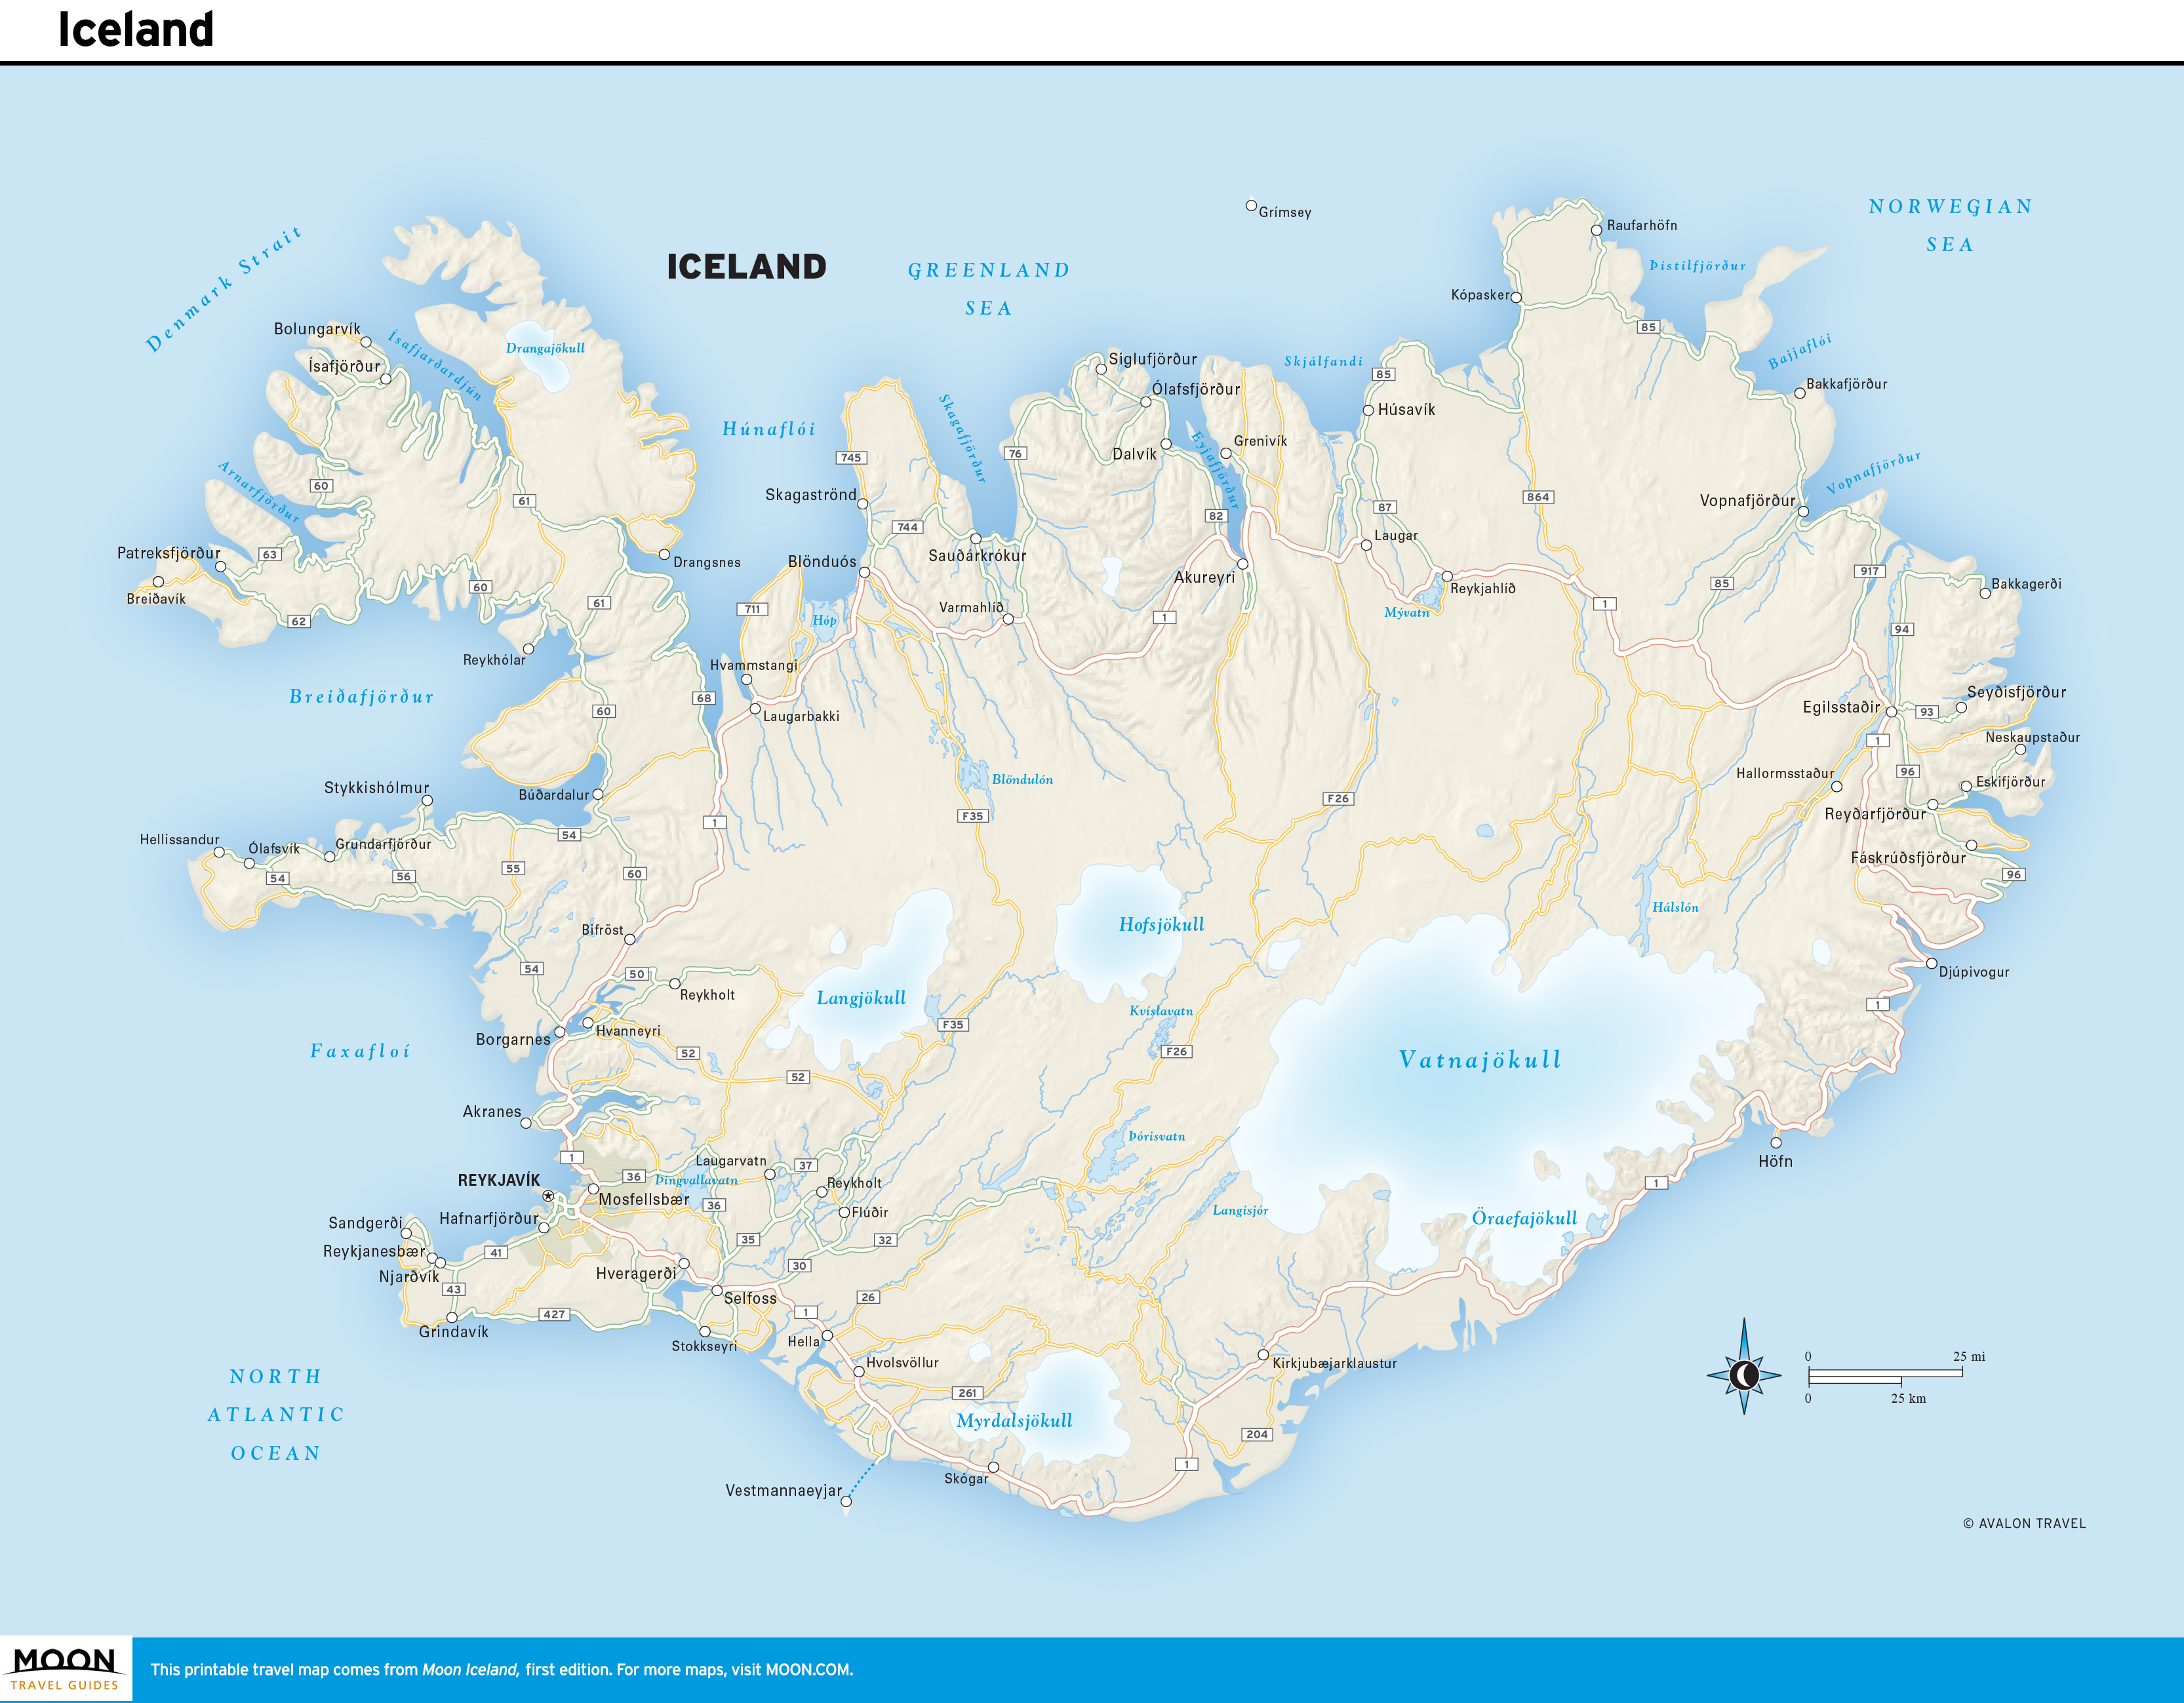 picture regarding Printable Iceland Map called Iceland Moon Generate Publications